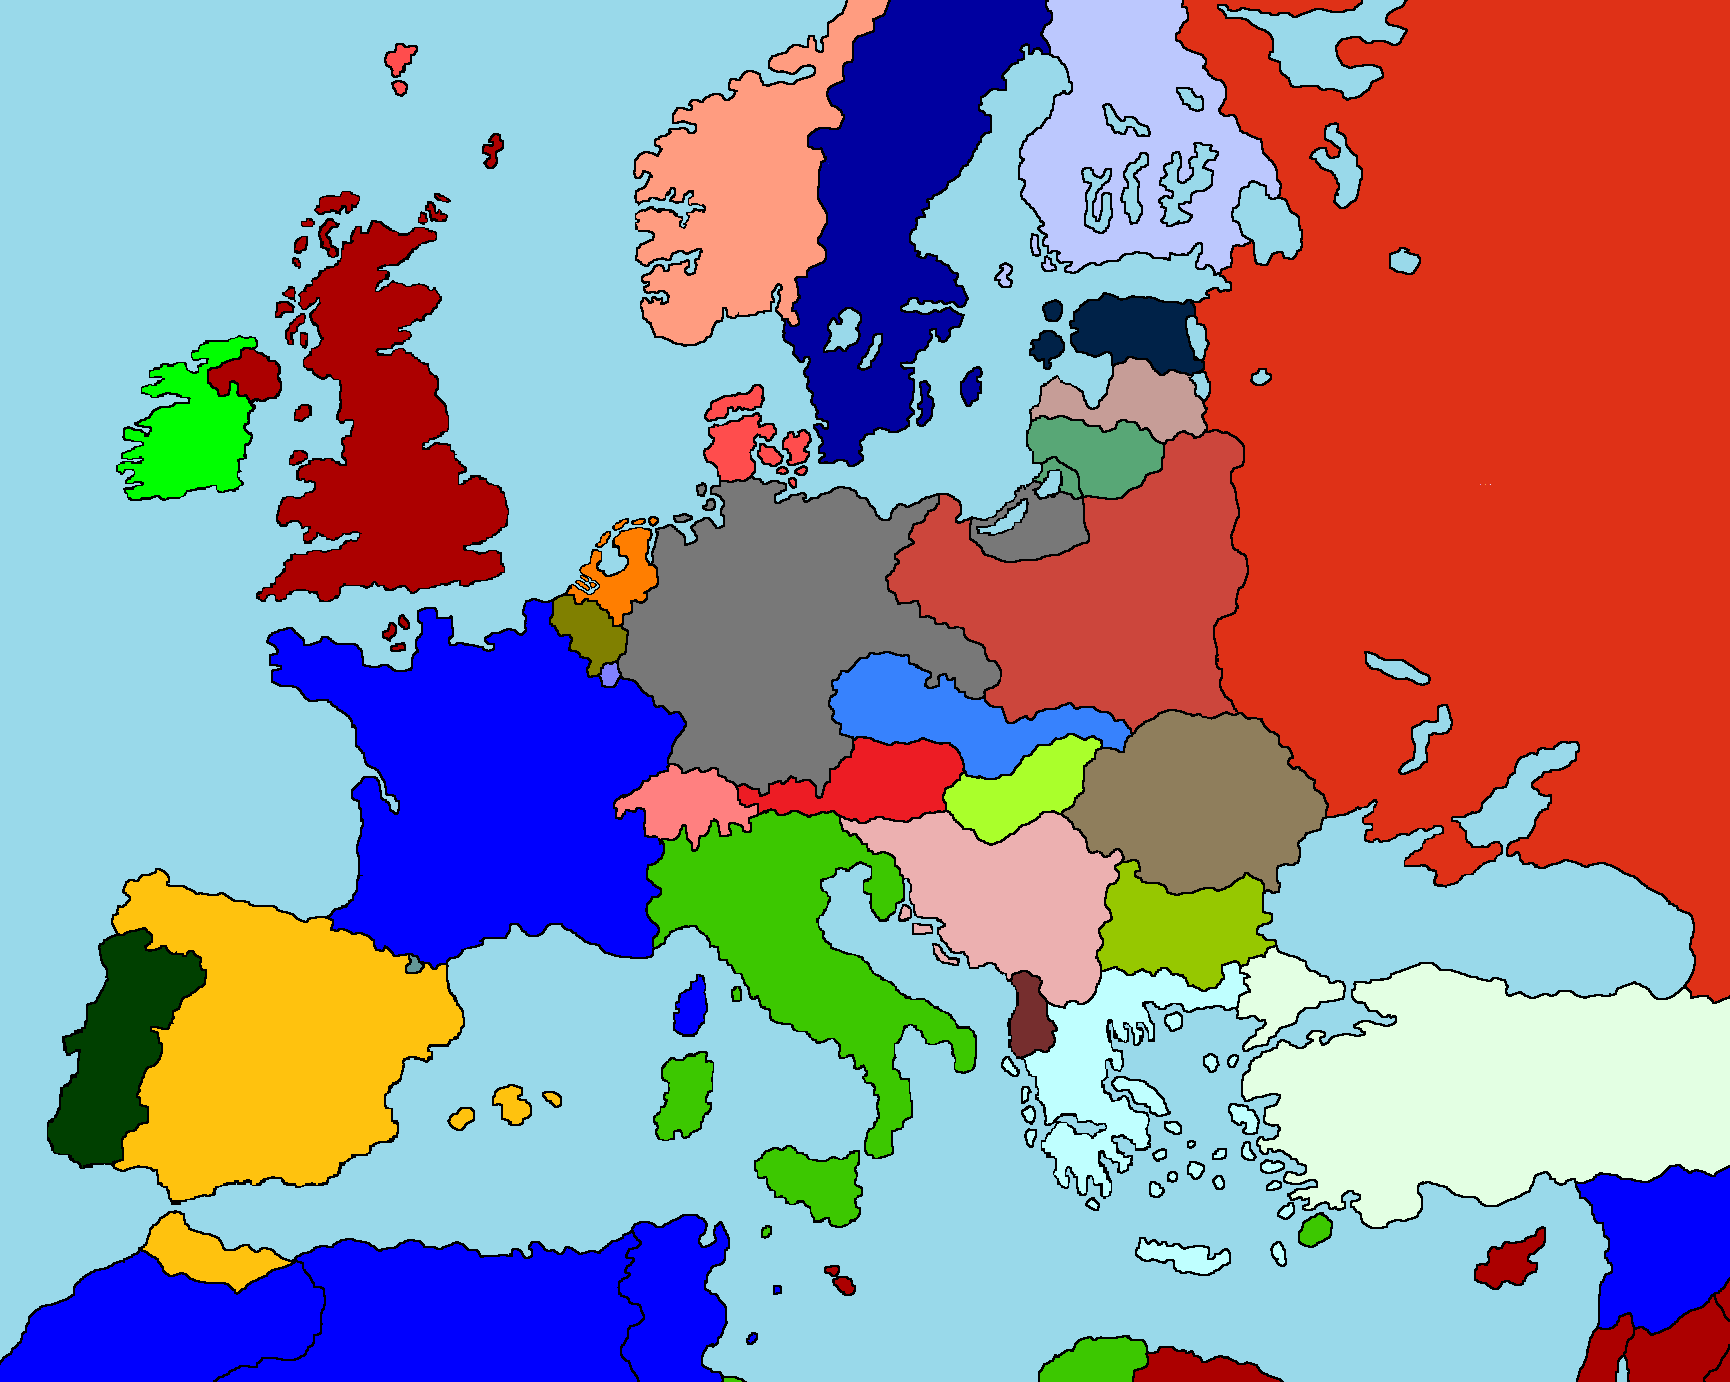 Image Drawn Colored Blank Map Of Europe Png - Unlabelled map